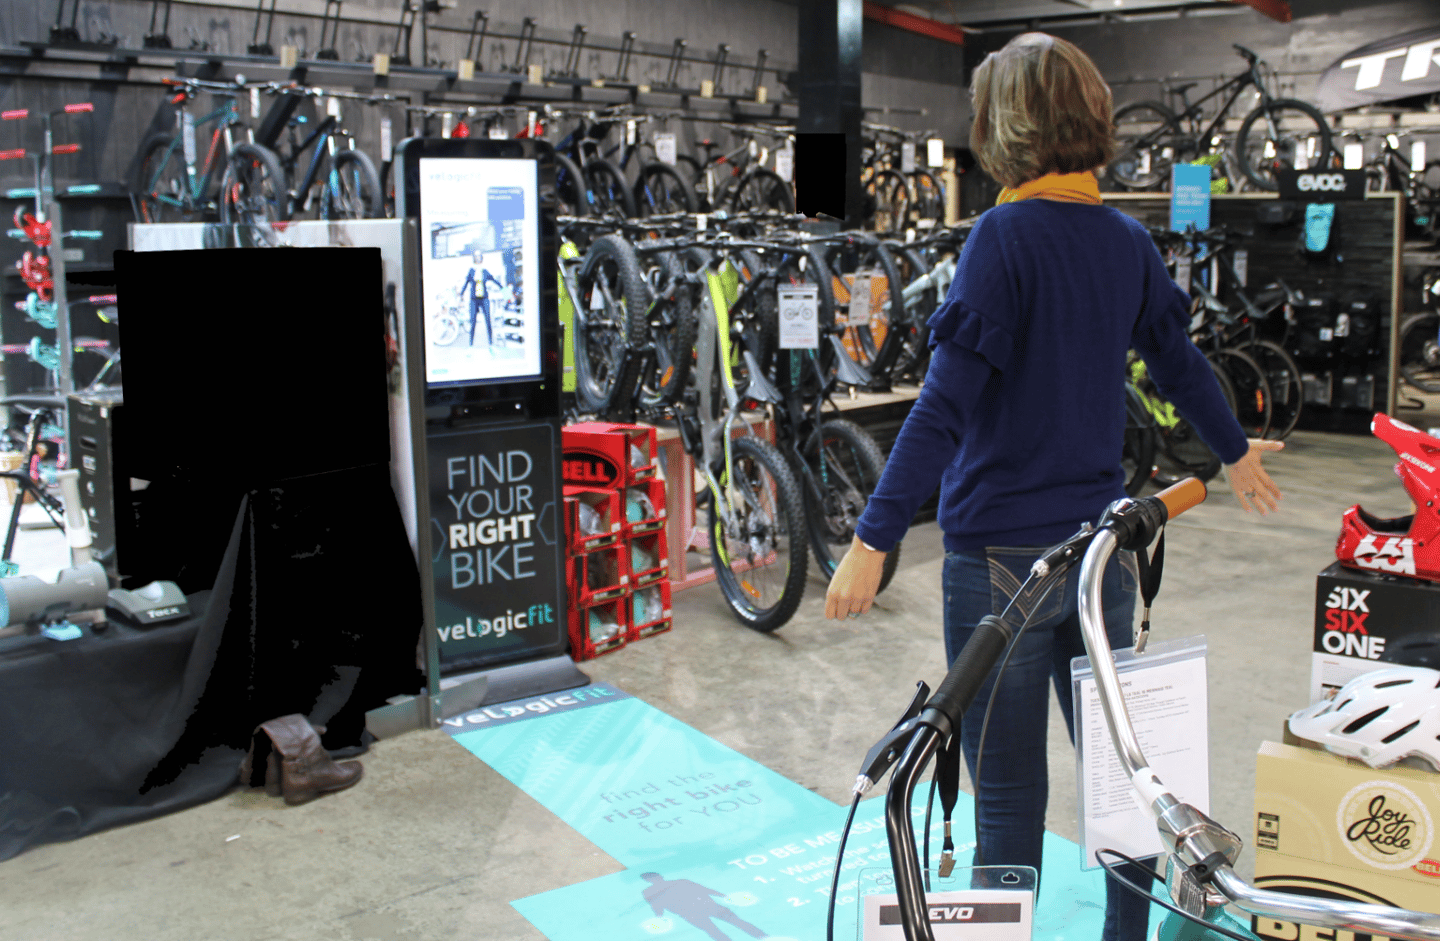 Bike buyers stand in front of the Right Bike kiosk and are measured up before the system helps them choose a bike that fits their needs